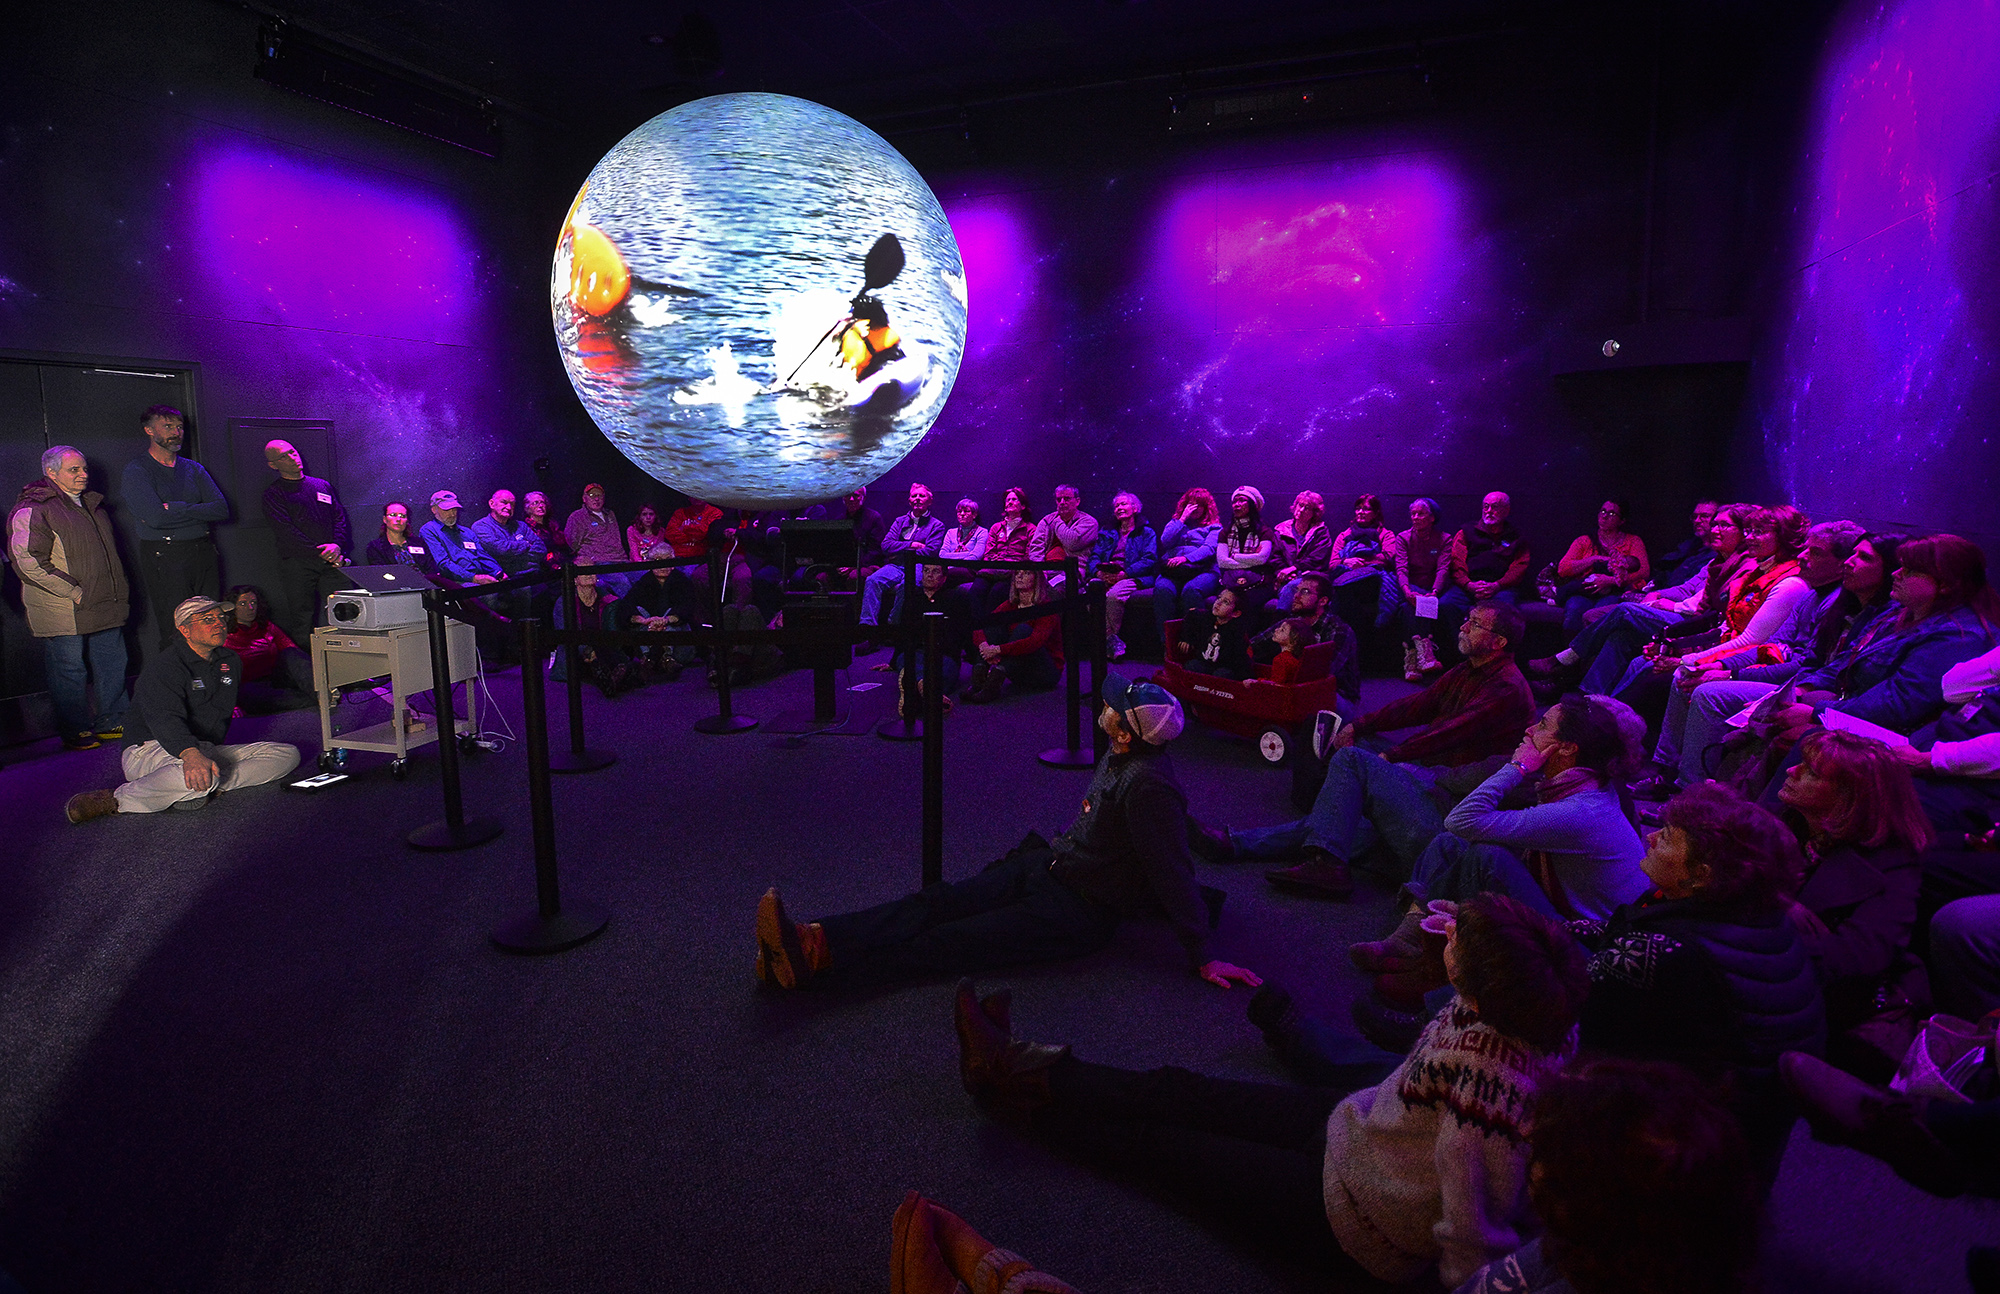 This was one of many audiences who crowded in to the Planet Adirondack Theater at The Wild Center yesterday for the premiere of WATER FALLS.